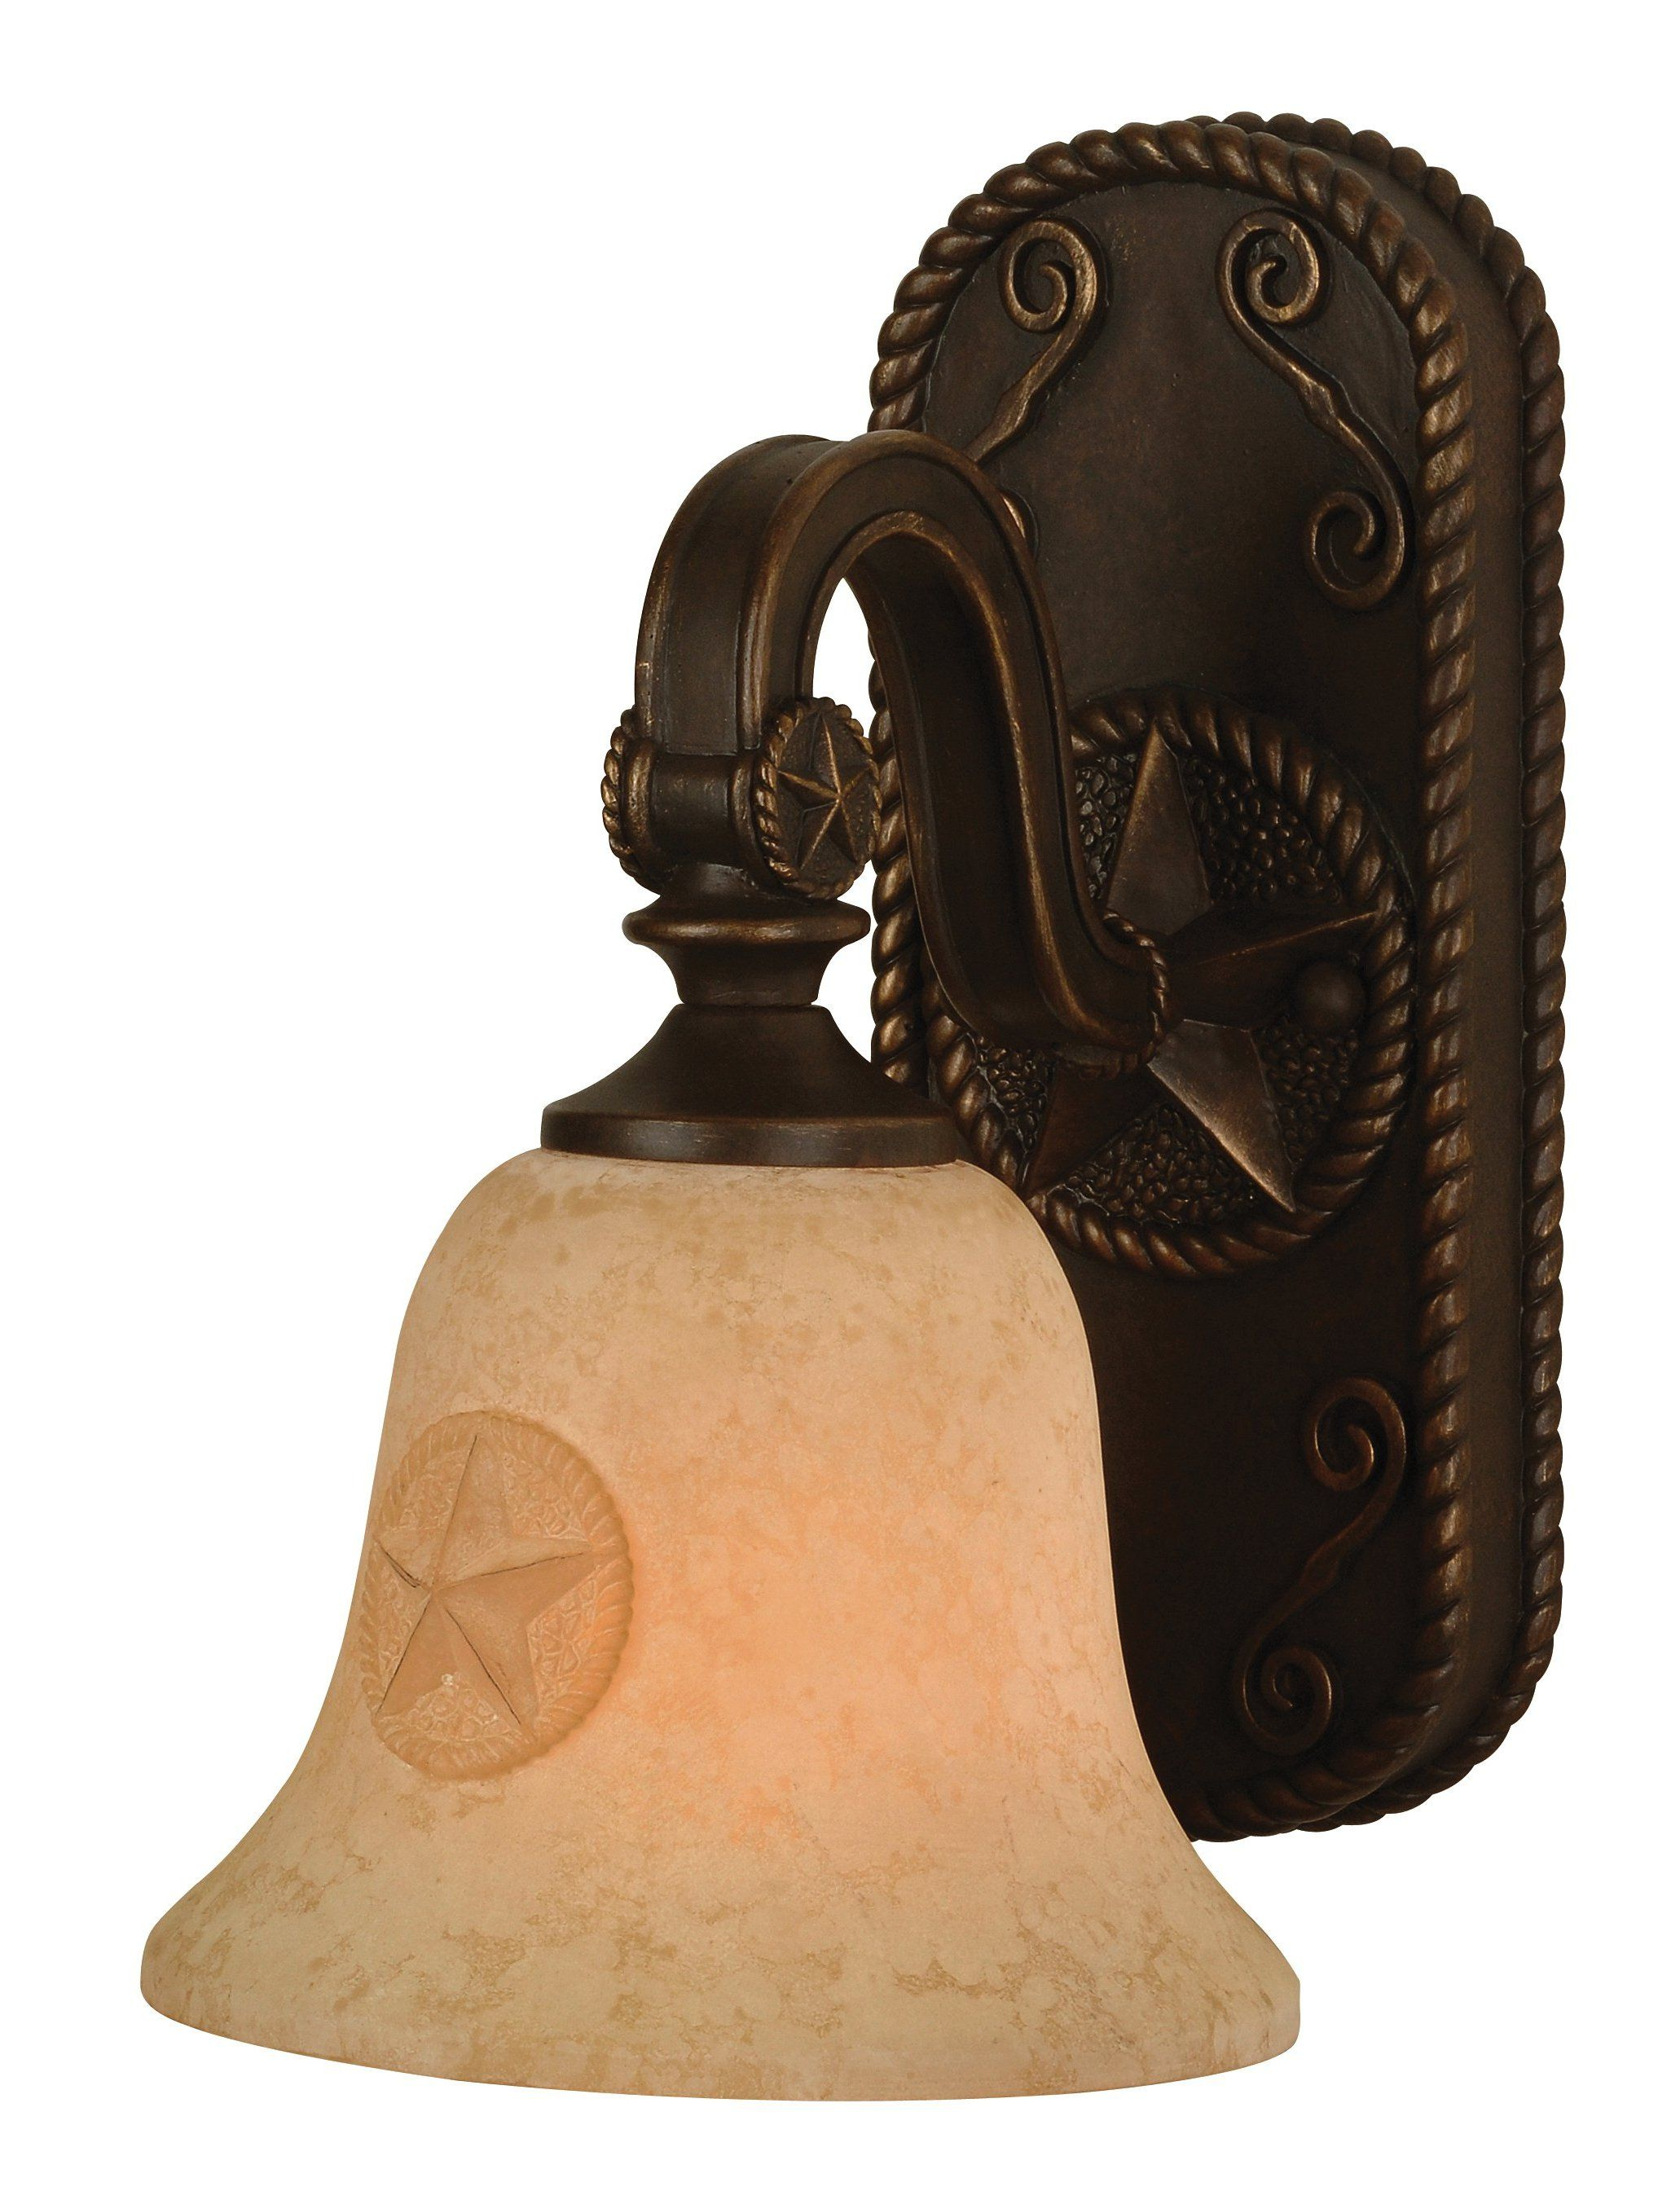 Western Rustic Patio Lighting Fixtures Chaparral Country Single Light 7 25 Length Bathroom Fixture